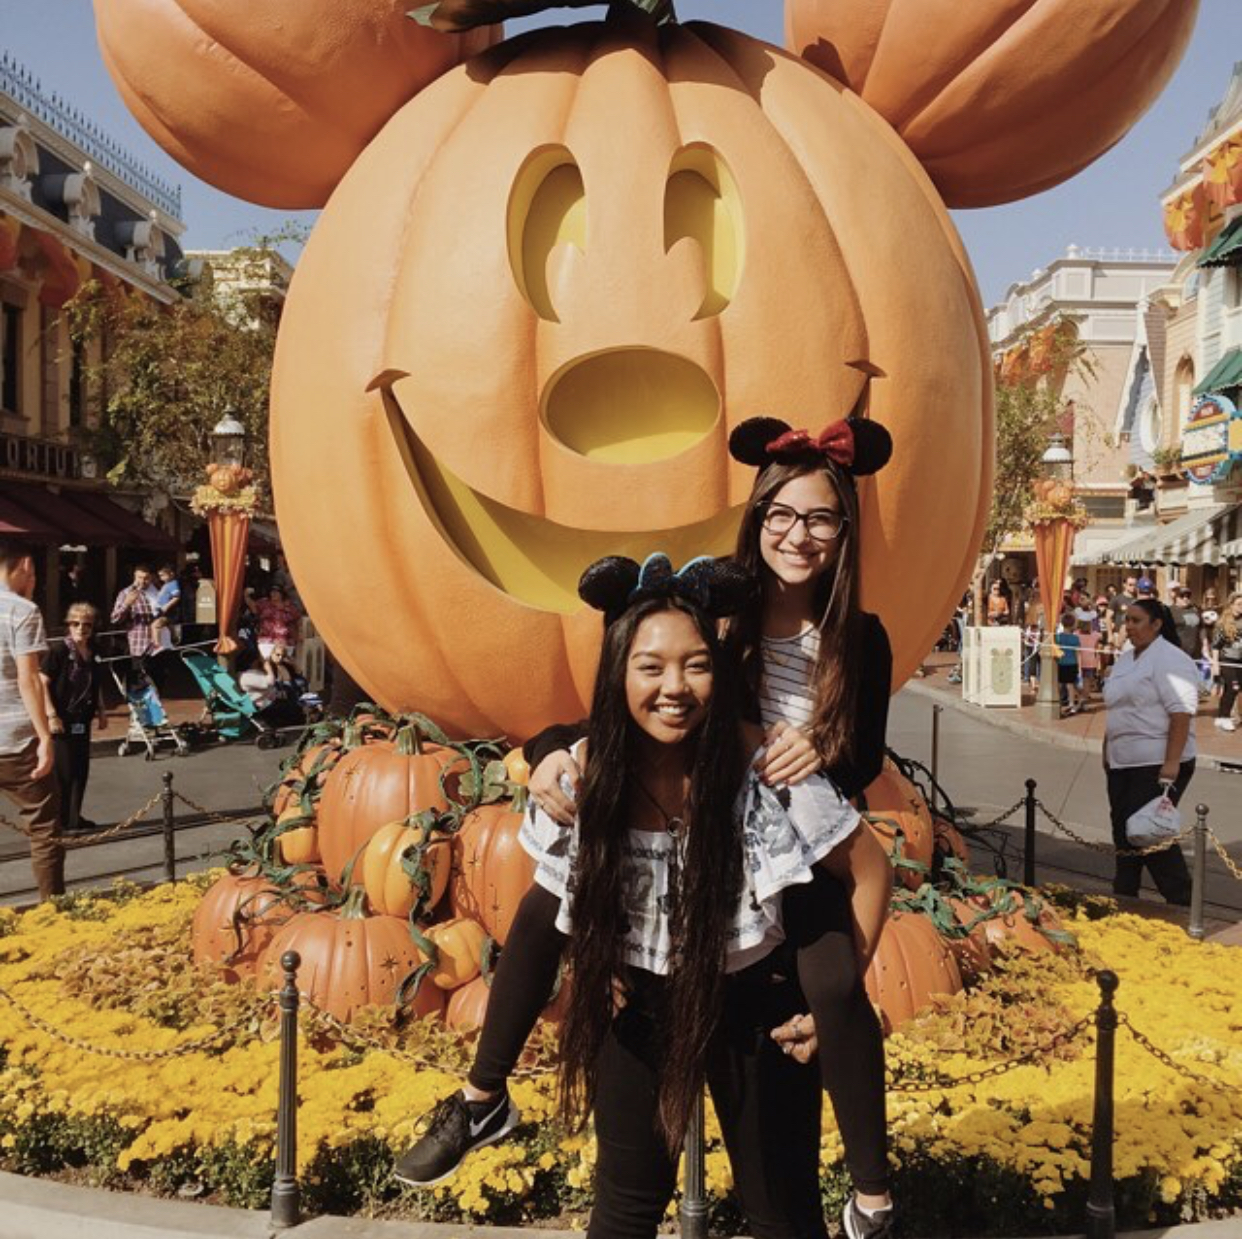 Aubrey and friend in front of Disneyland halloween Mickey Mouse